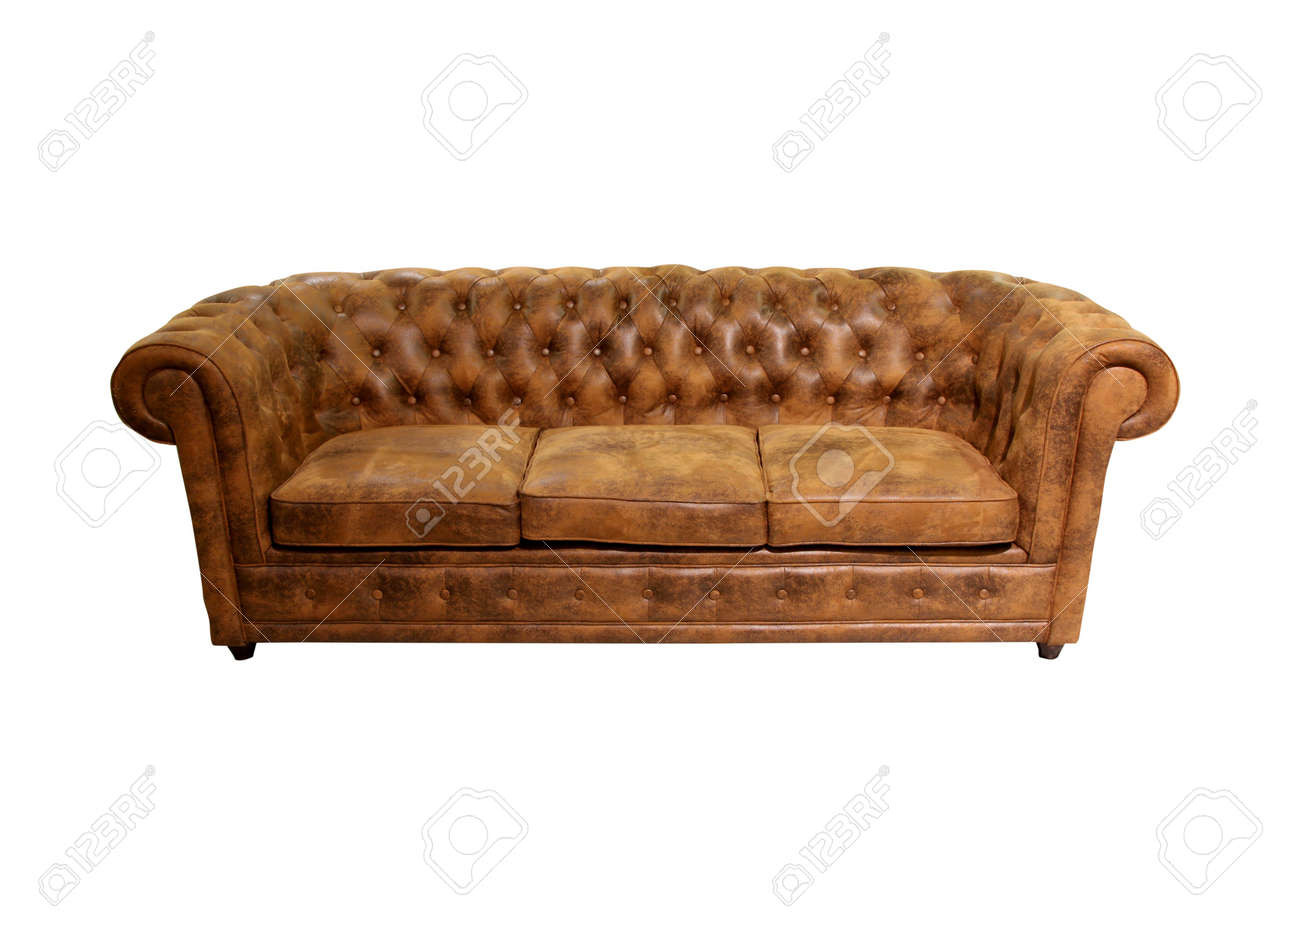 Old Sofa Old Sofa Images Stock Pictures Royalty Free Old Sofa Photos And